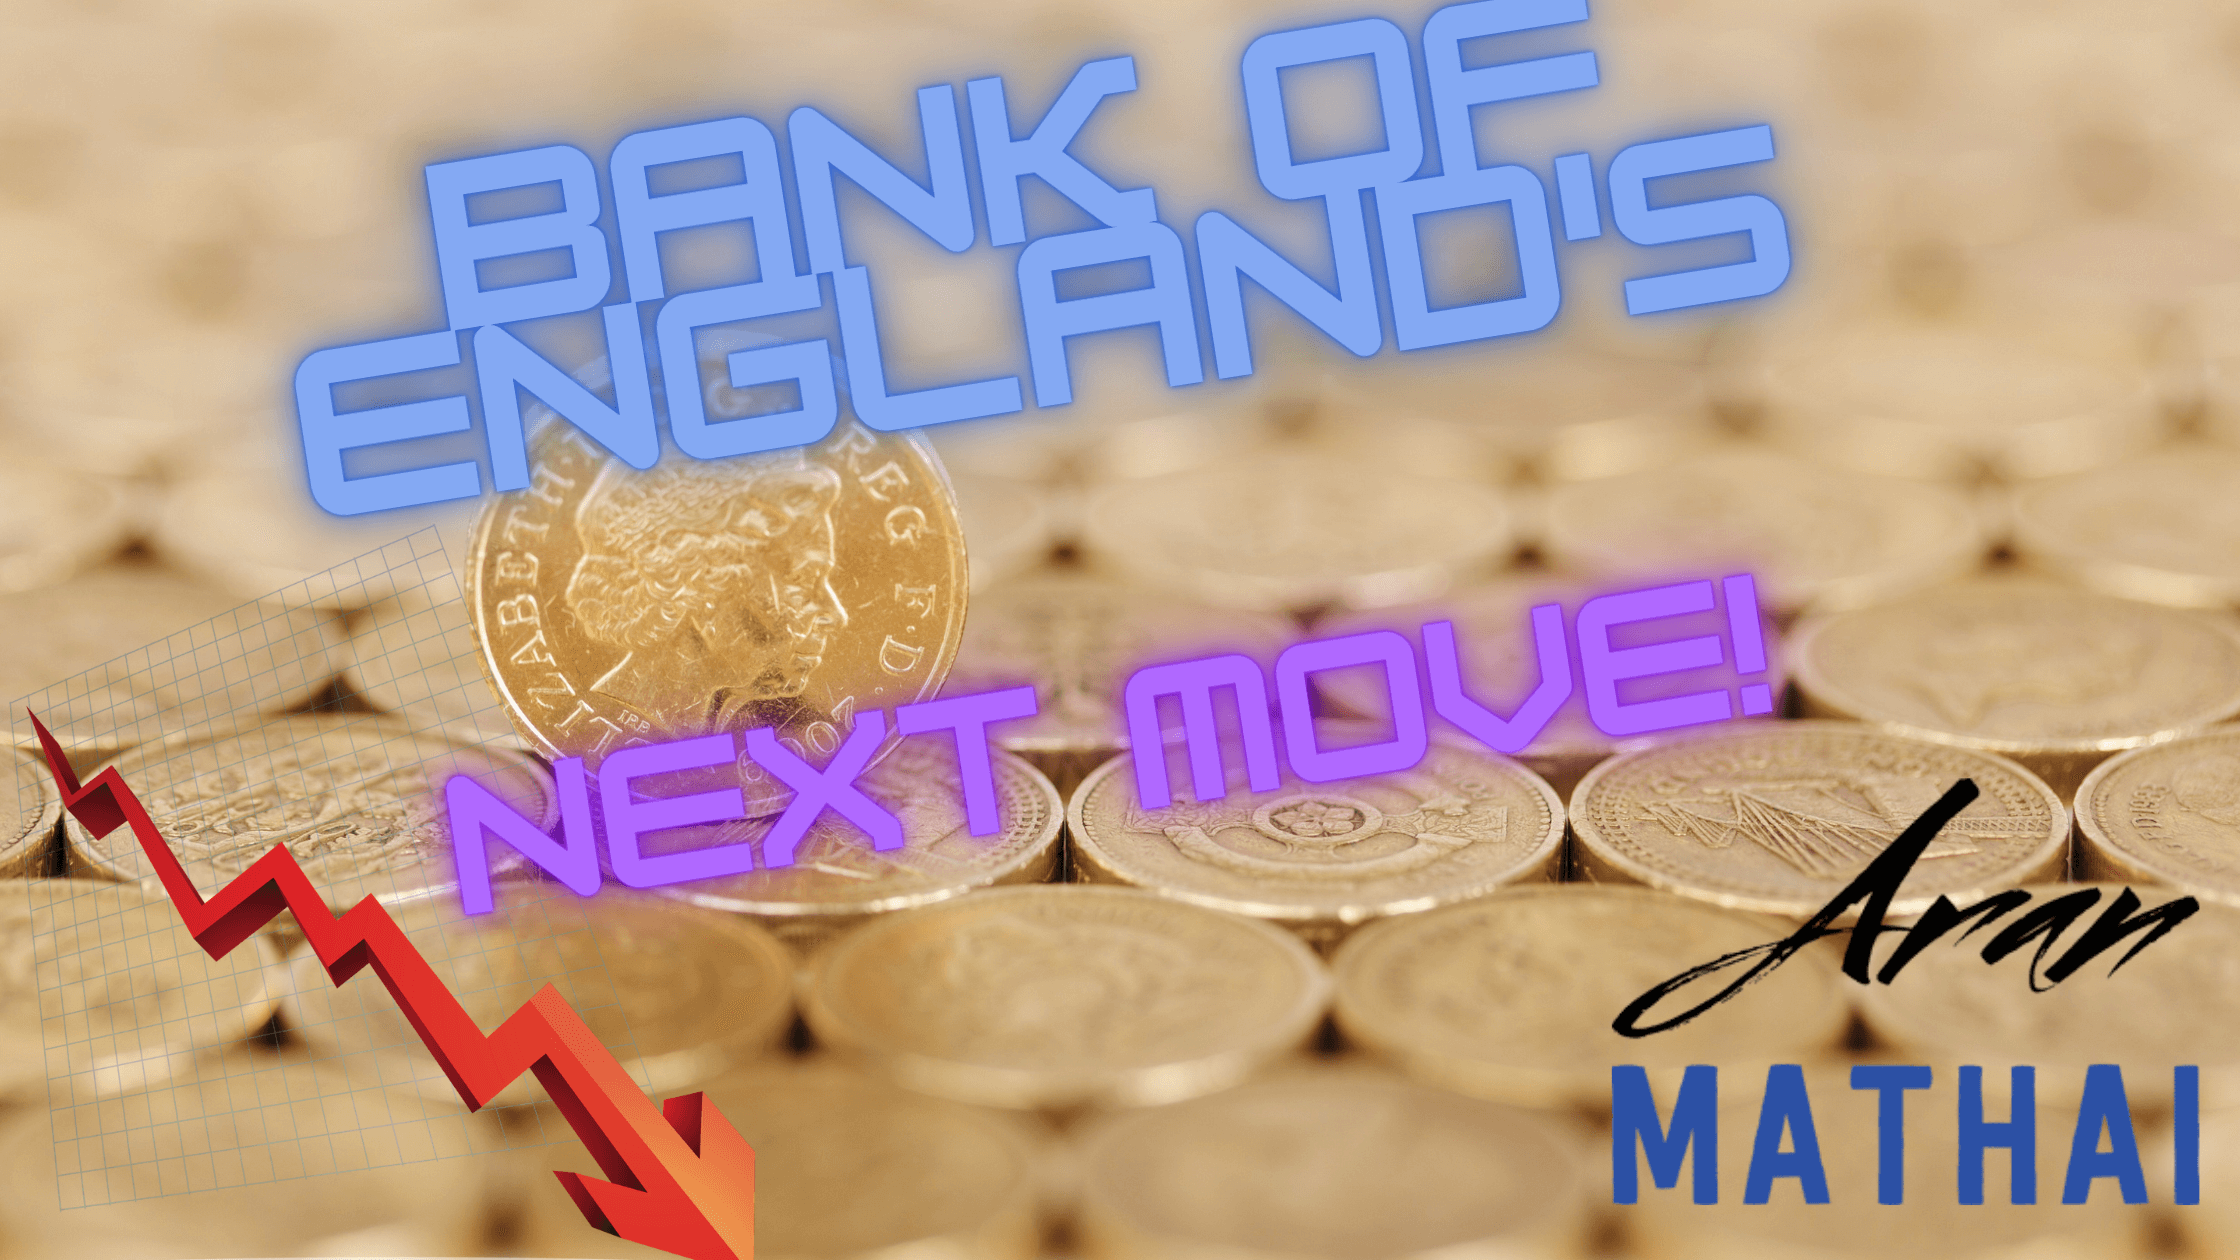 Bank Of England's Next Move